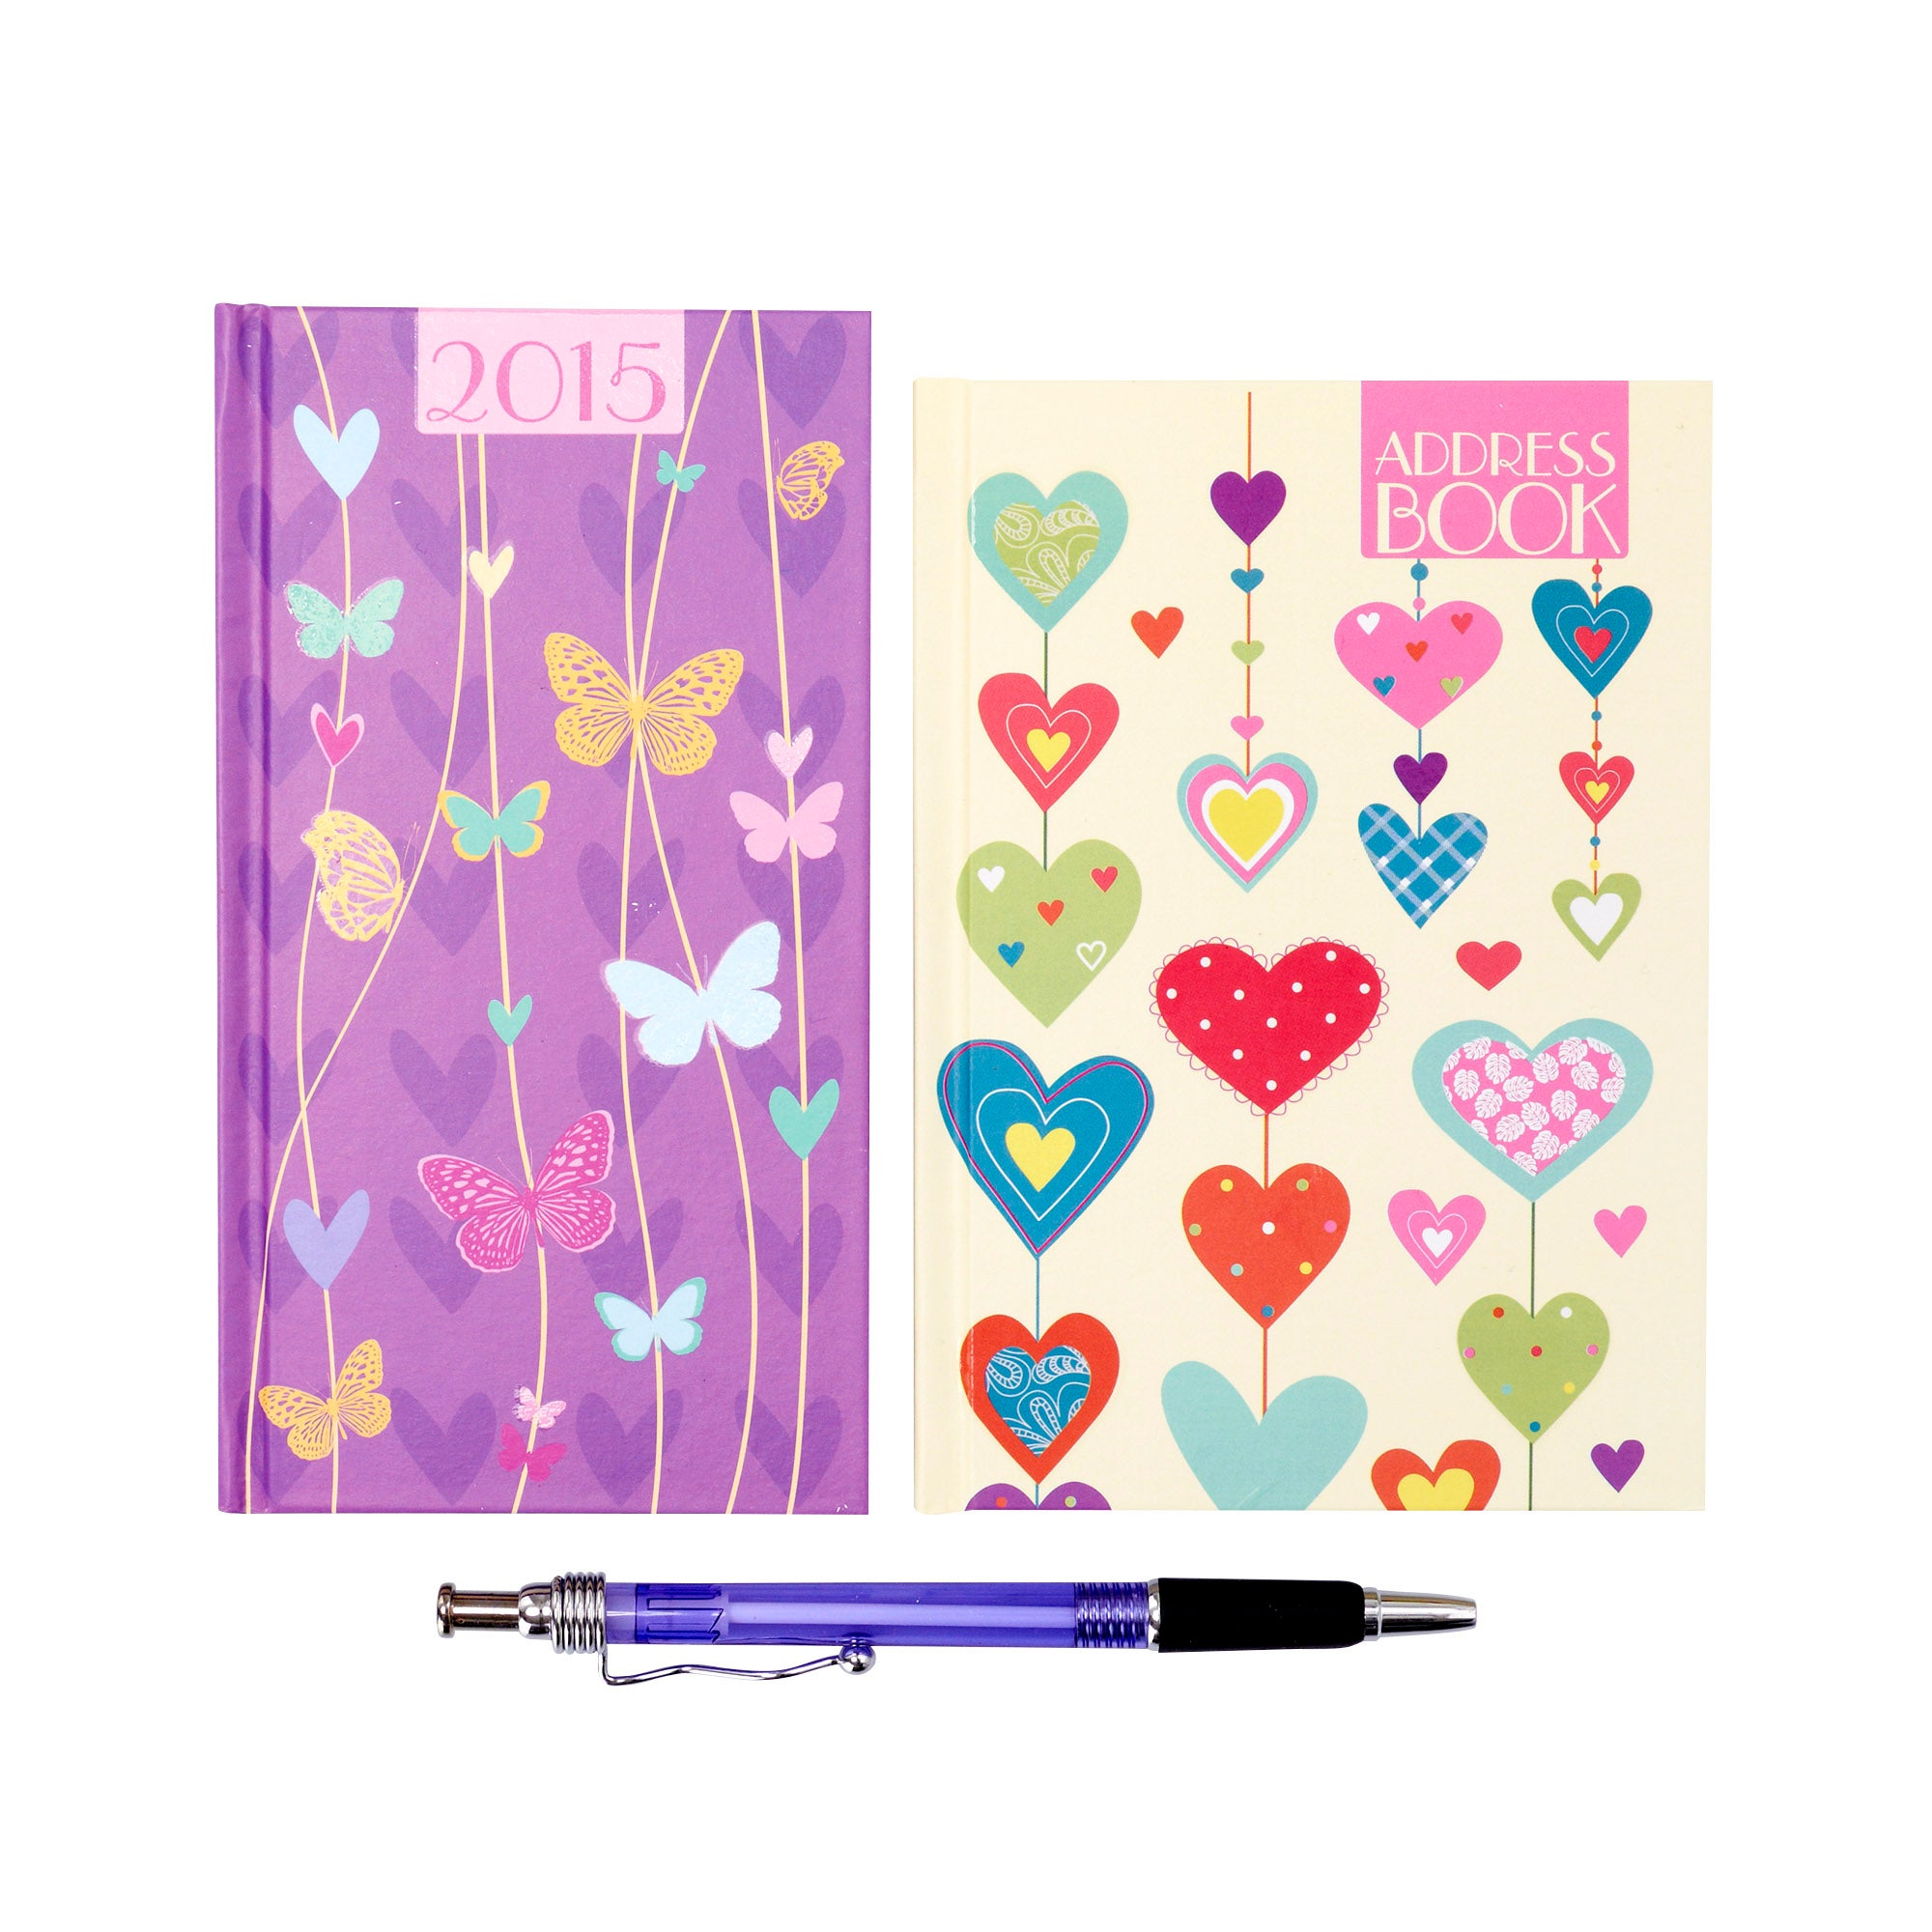 Hearts with Butterflies 2015 Diary and Address Book